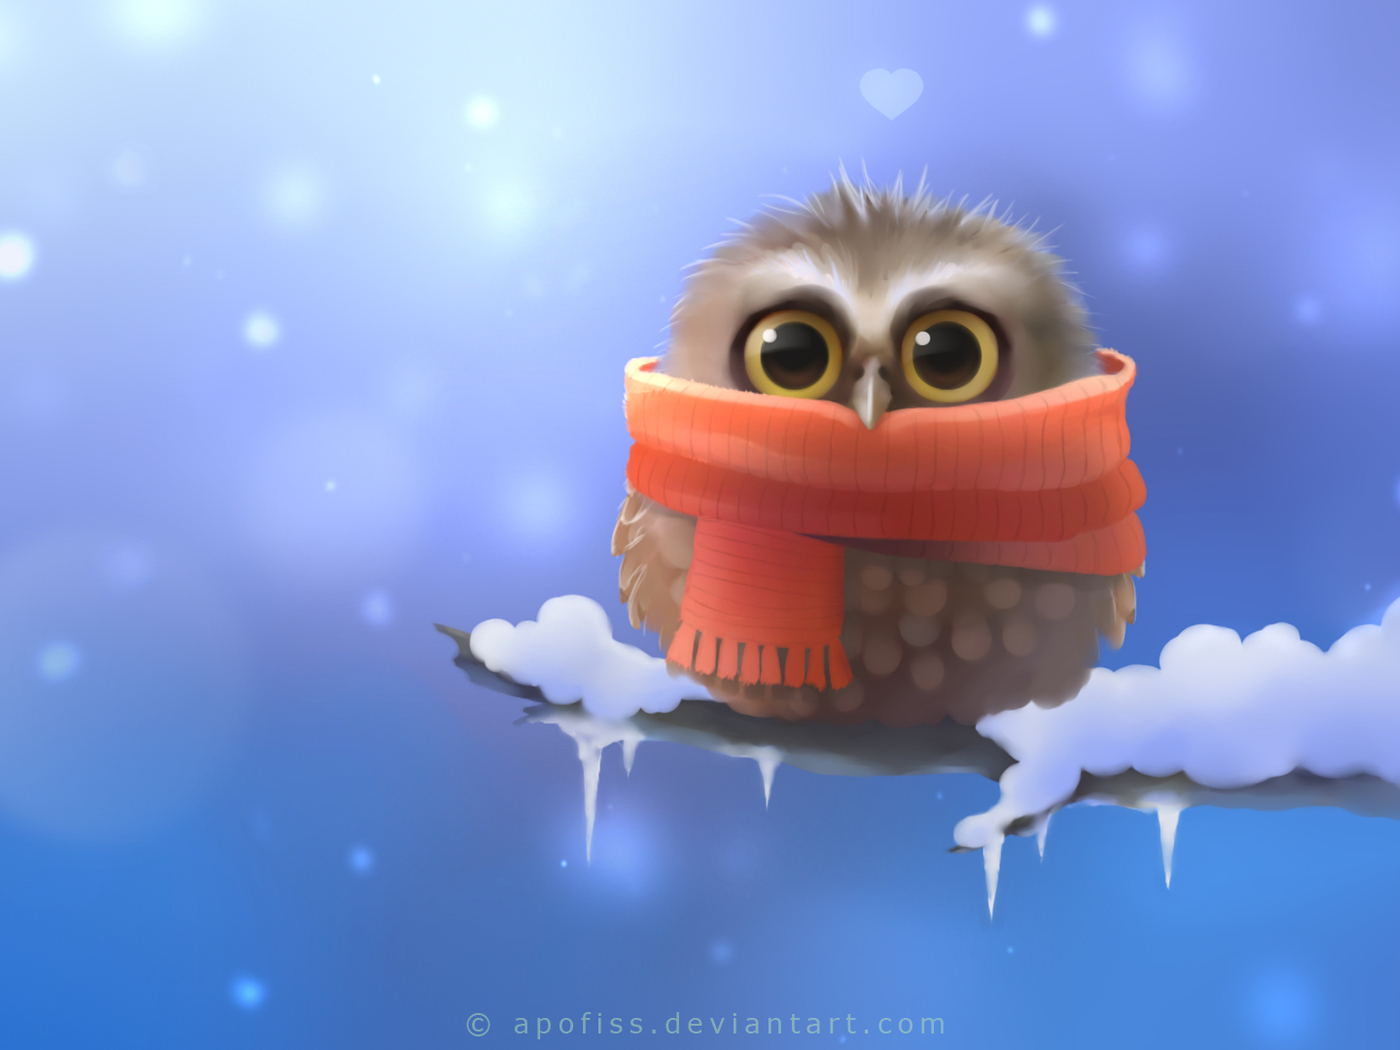 1400x1050 Cute Owl 1400x1050 Resolution Hd 4k Wallpapers